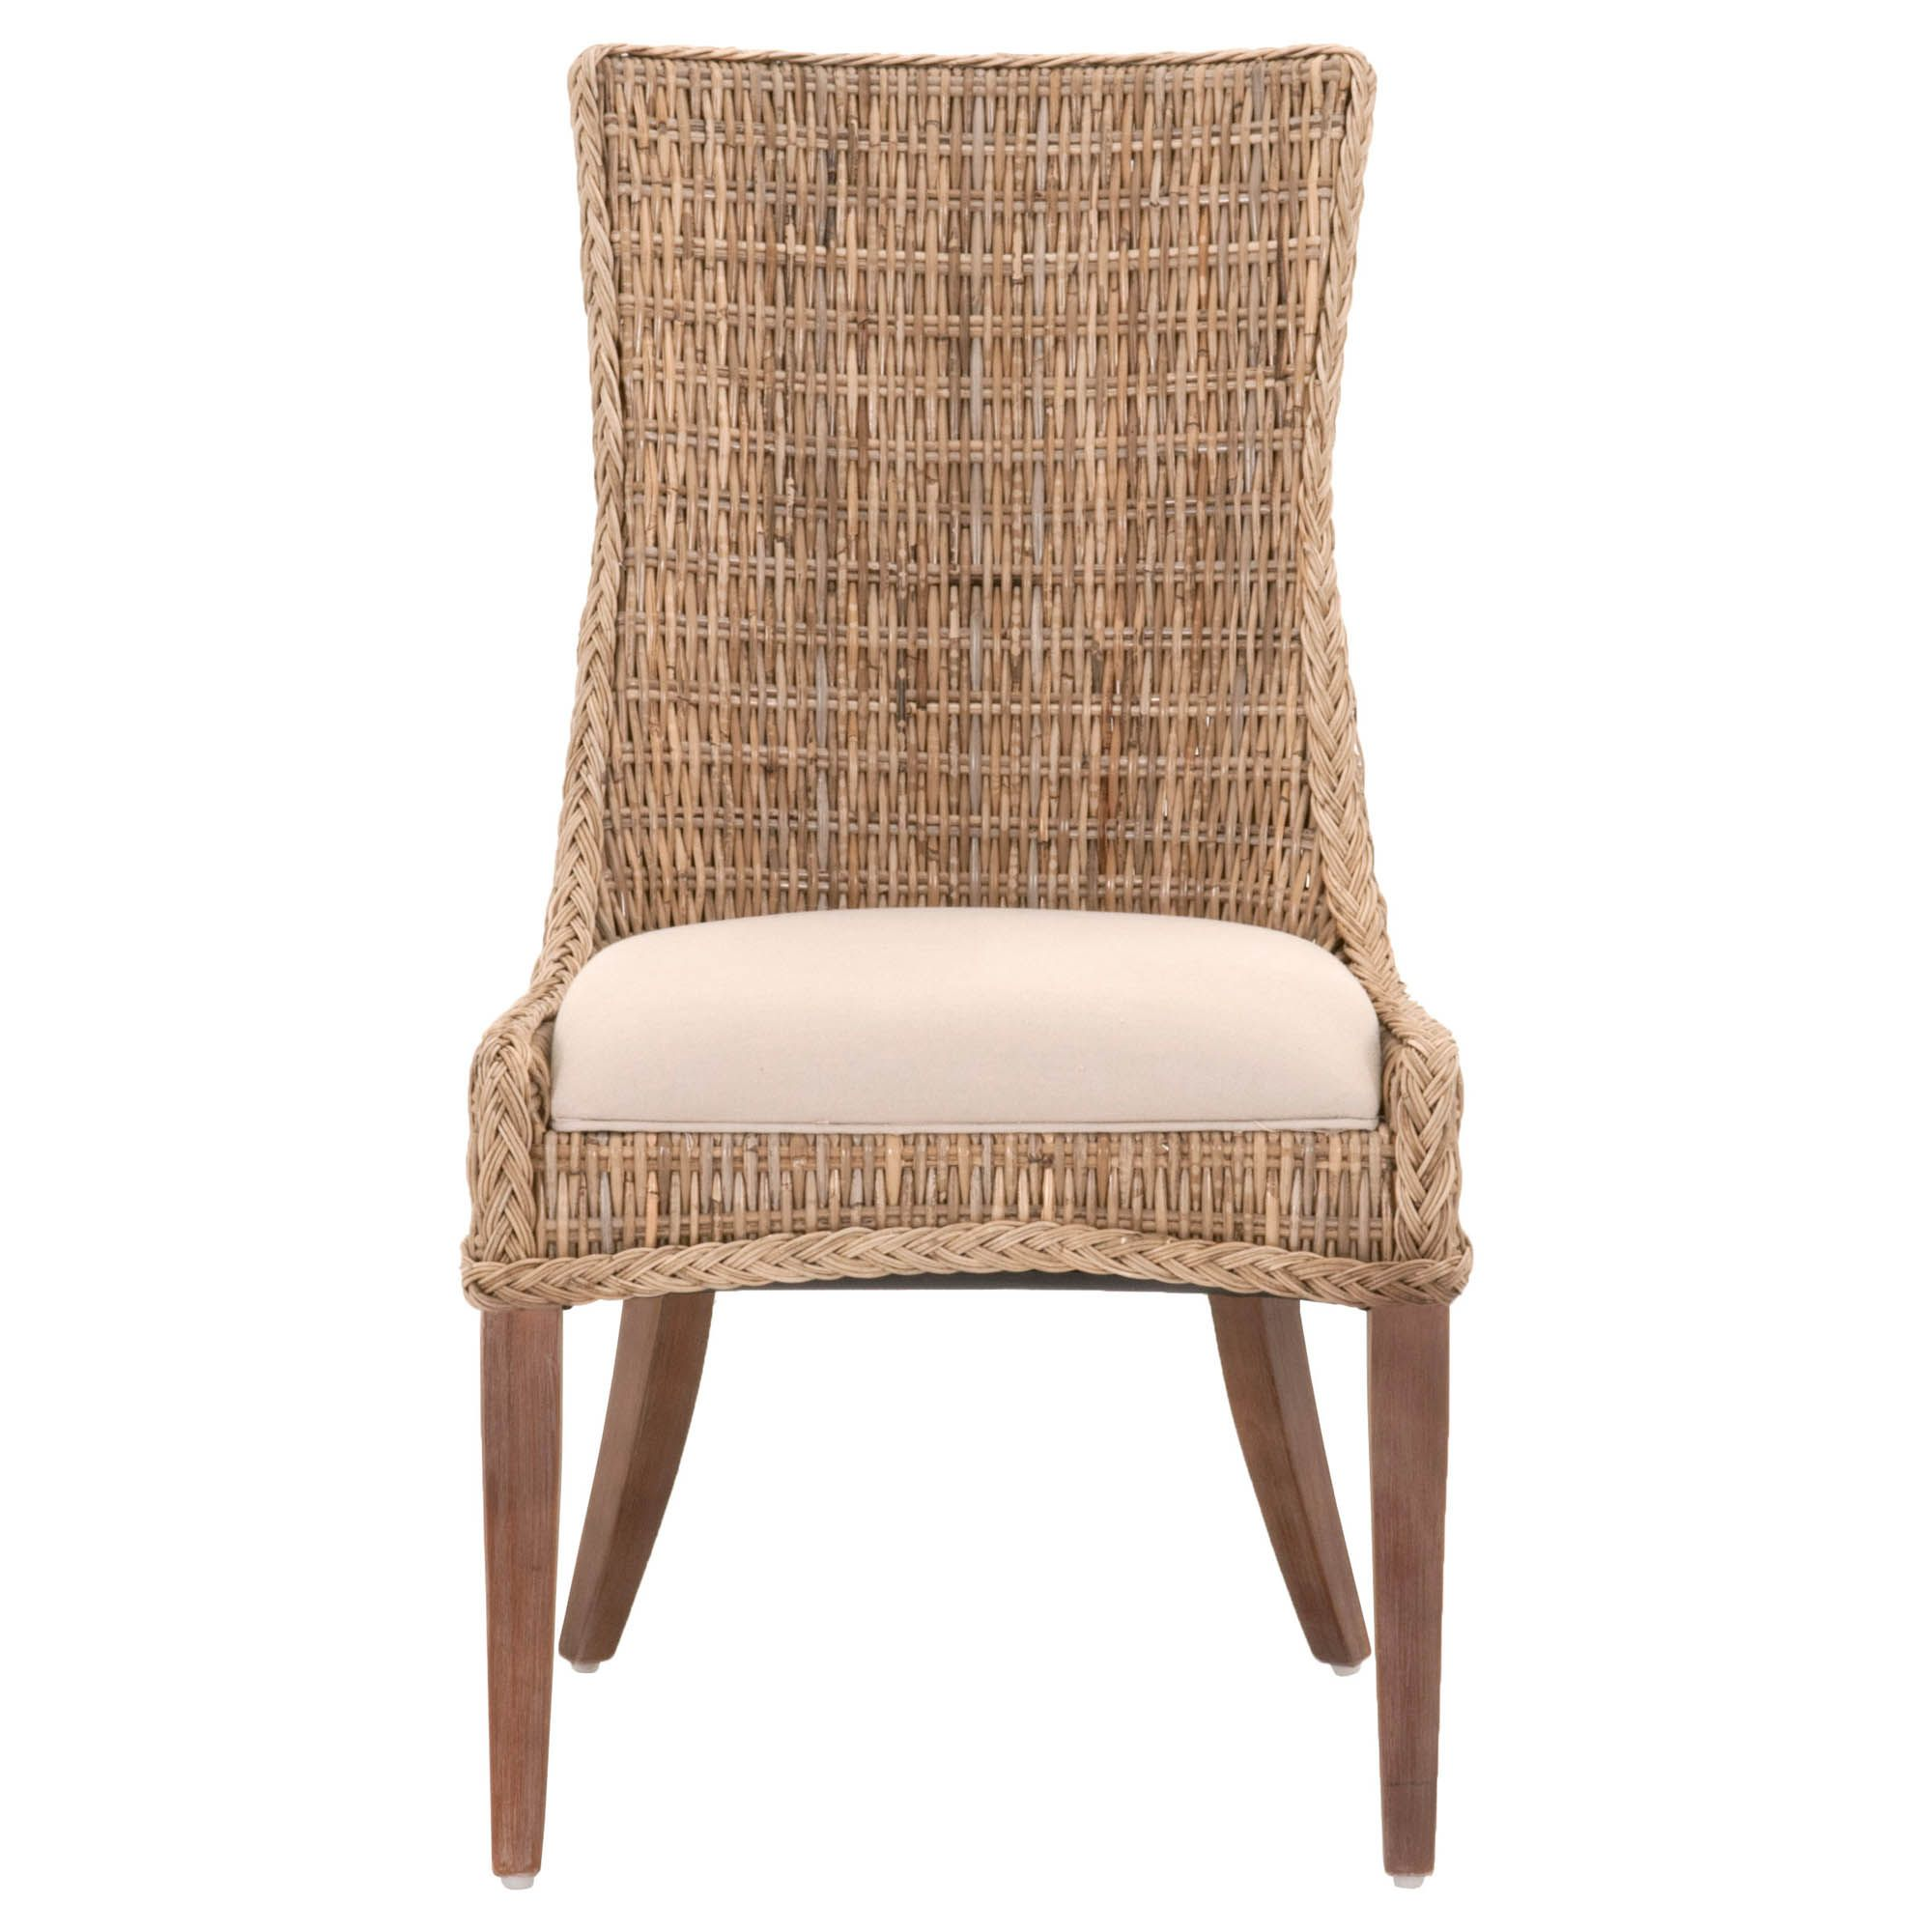 Greco Dining Chair Gray Kubu In 2020 Wicker Dining Chairs